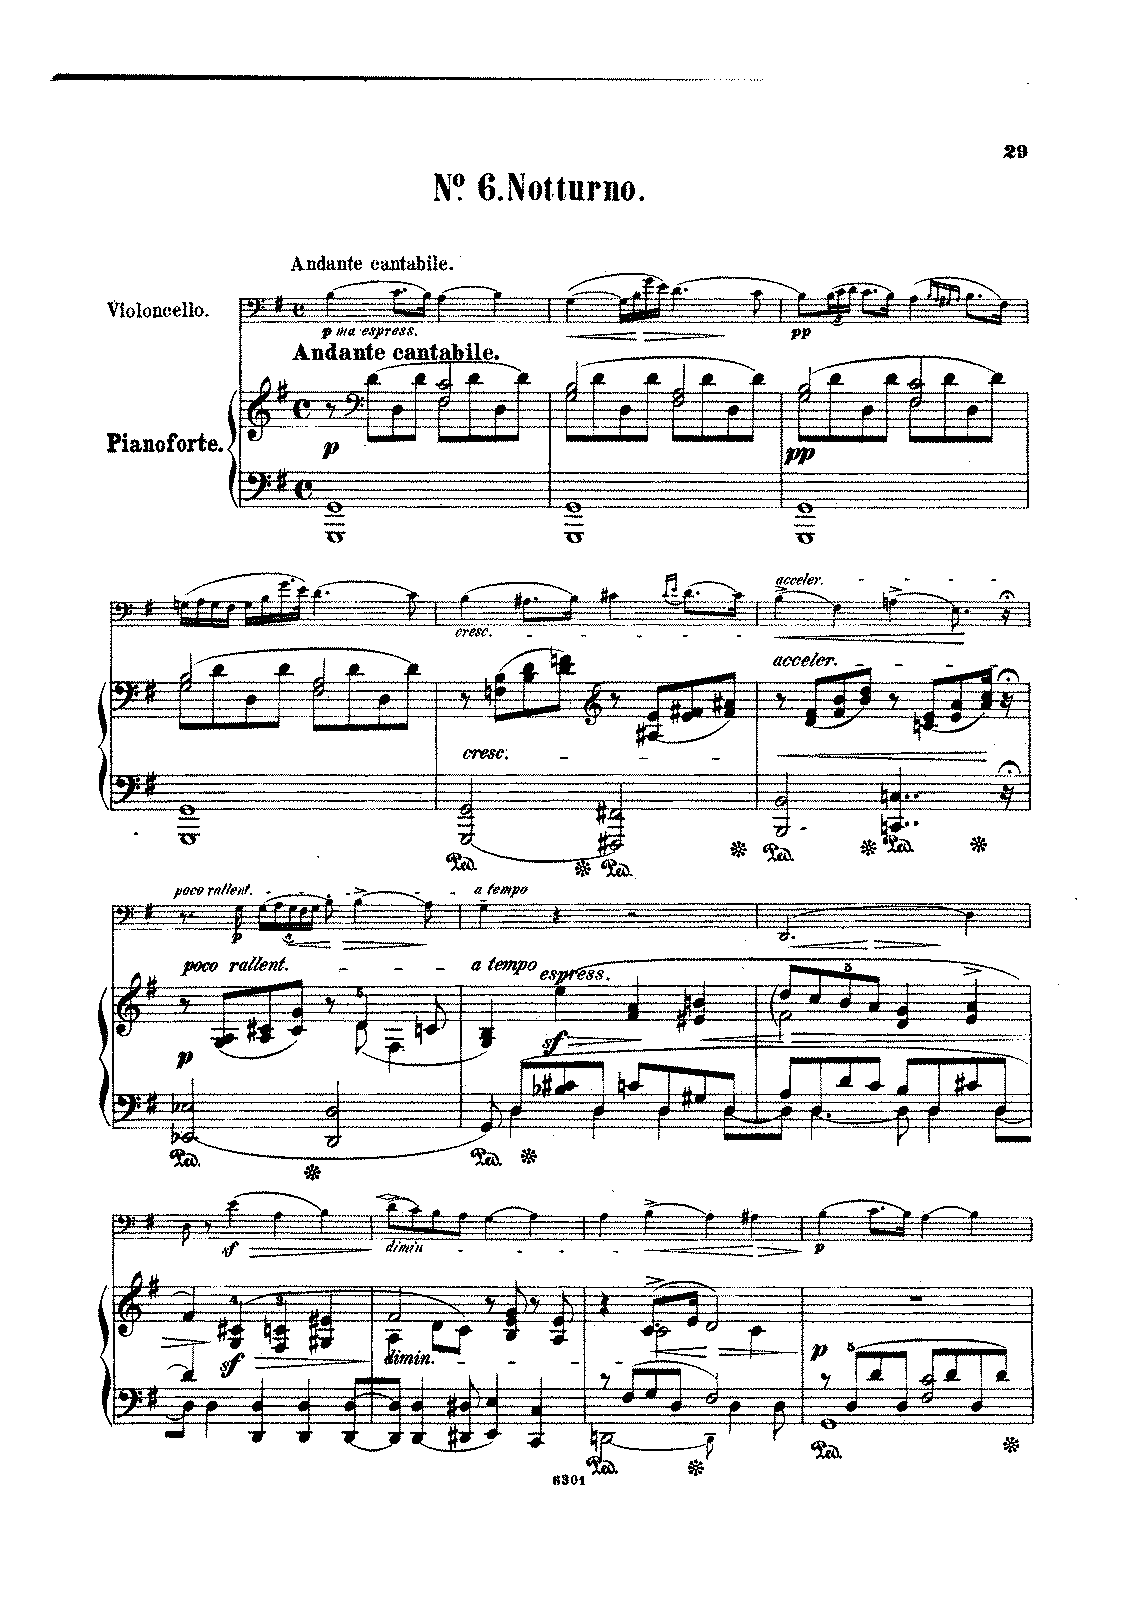 PMLP02306-Chopin - 6a Notturno Op32 No1 for Cello and Piano (Grutzmacher) score.pdf